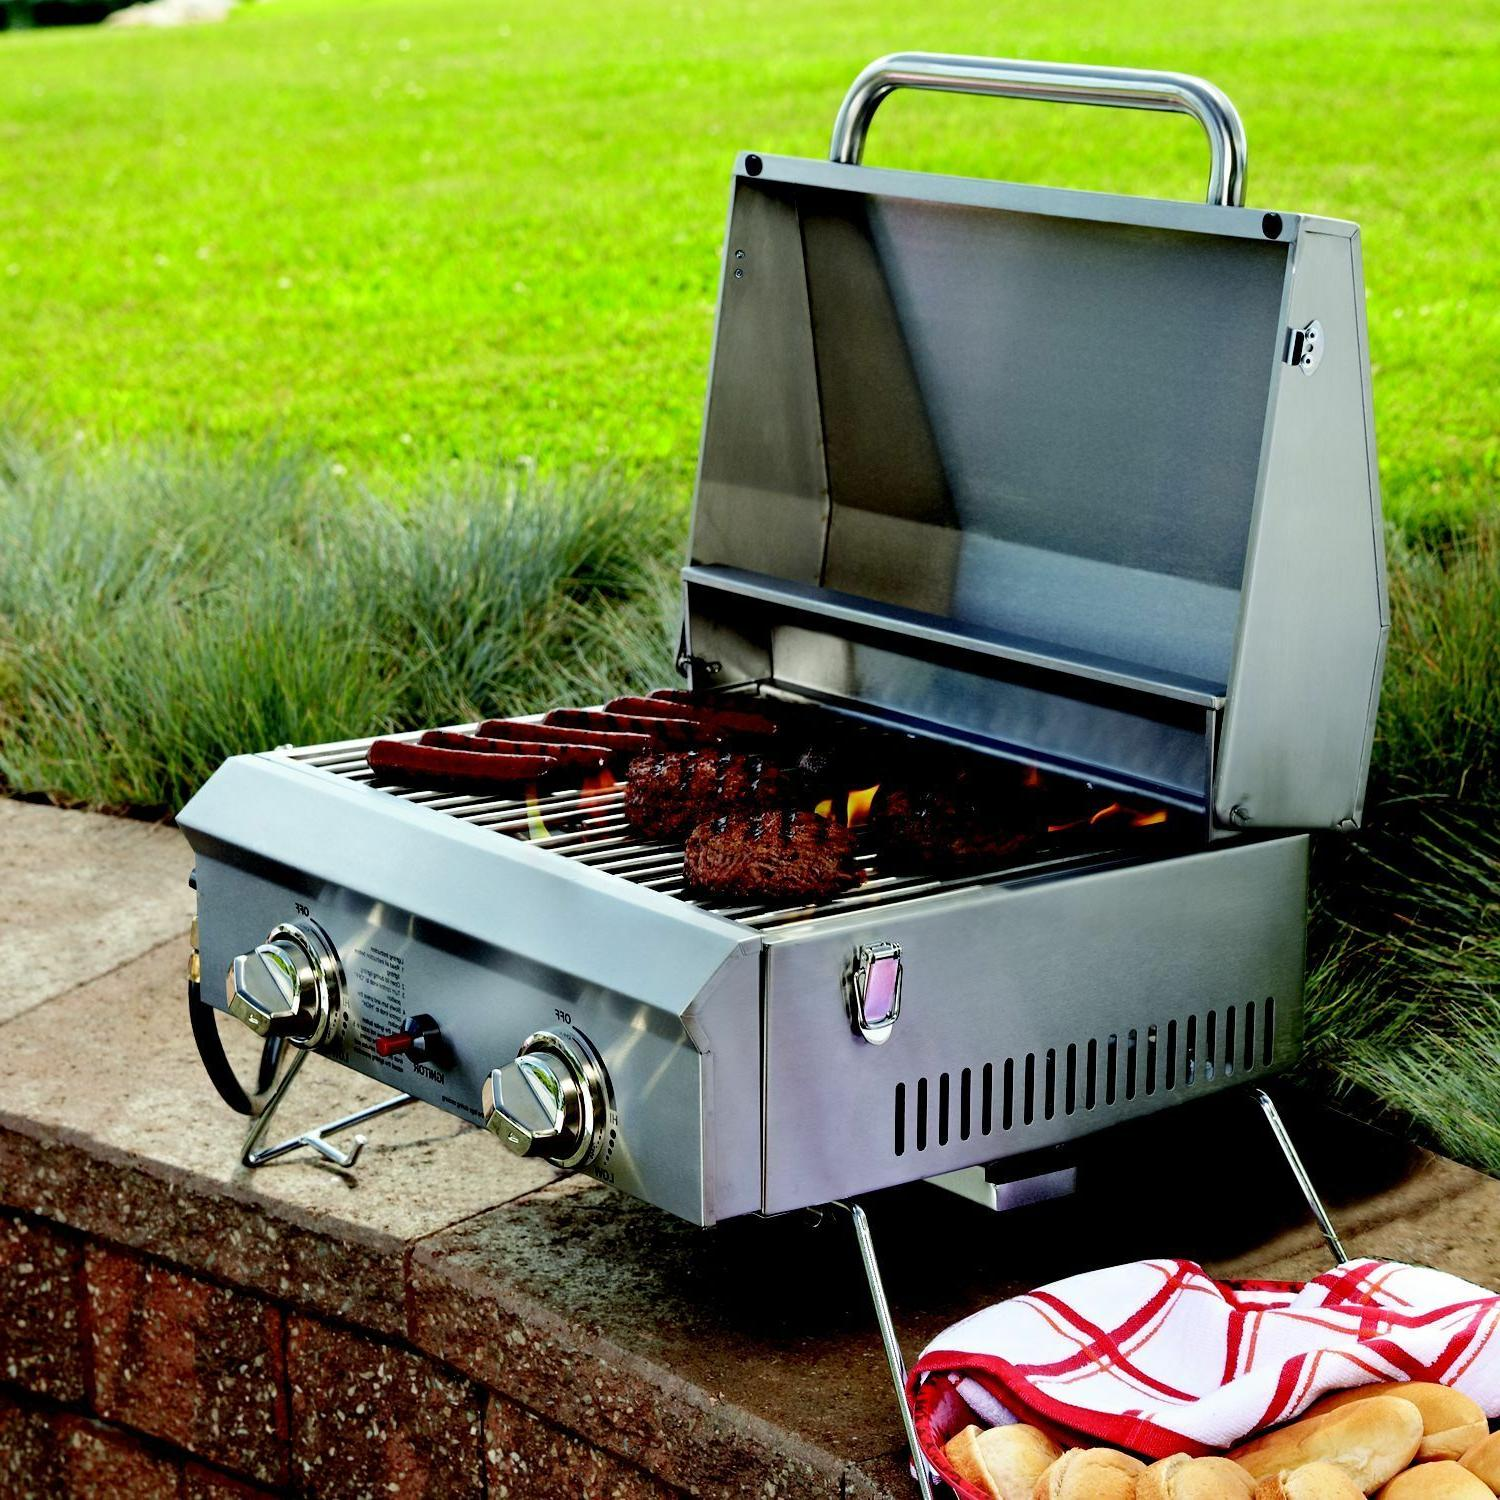 OUTDOOR PORTABLE STAINLESS STEEL 2 BURNERS GAS BBQ